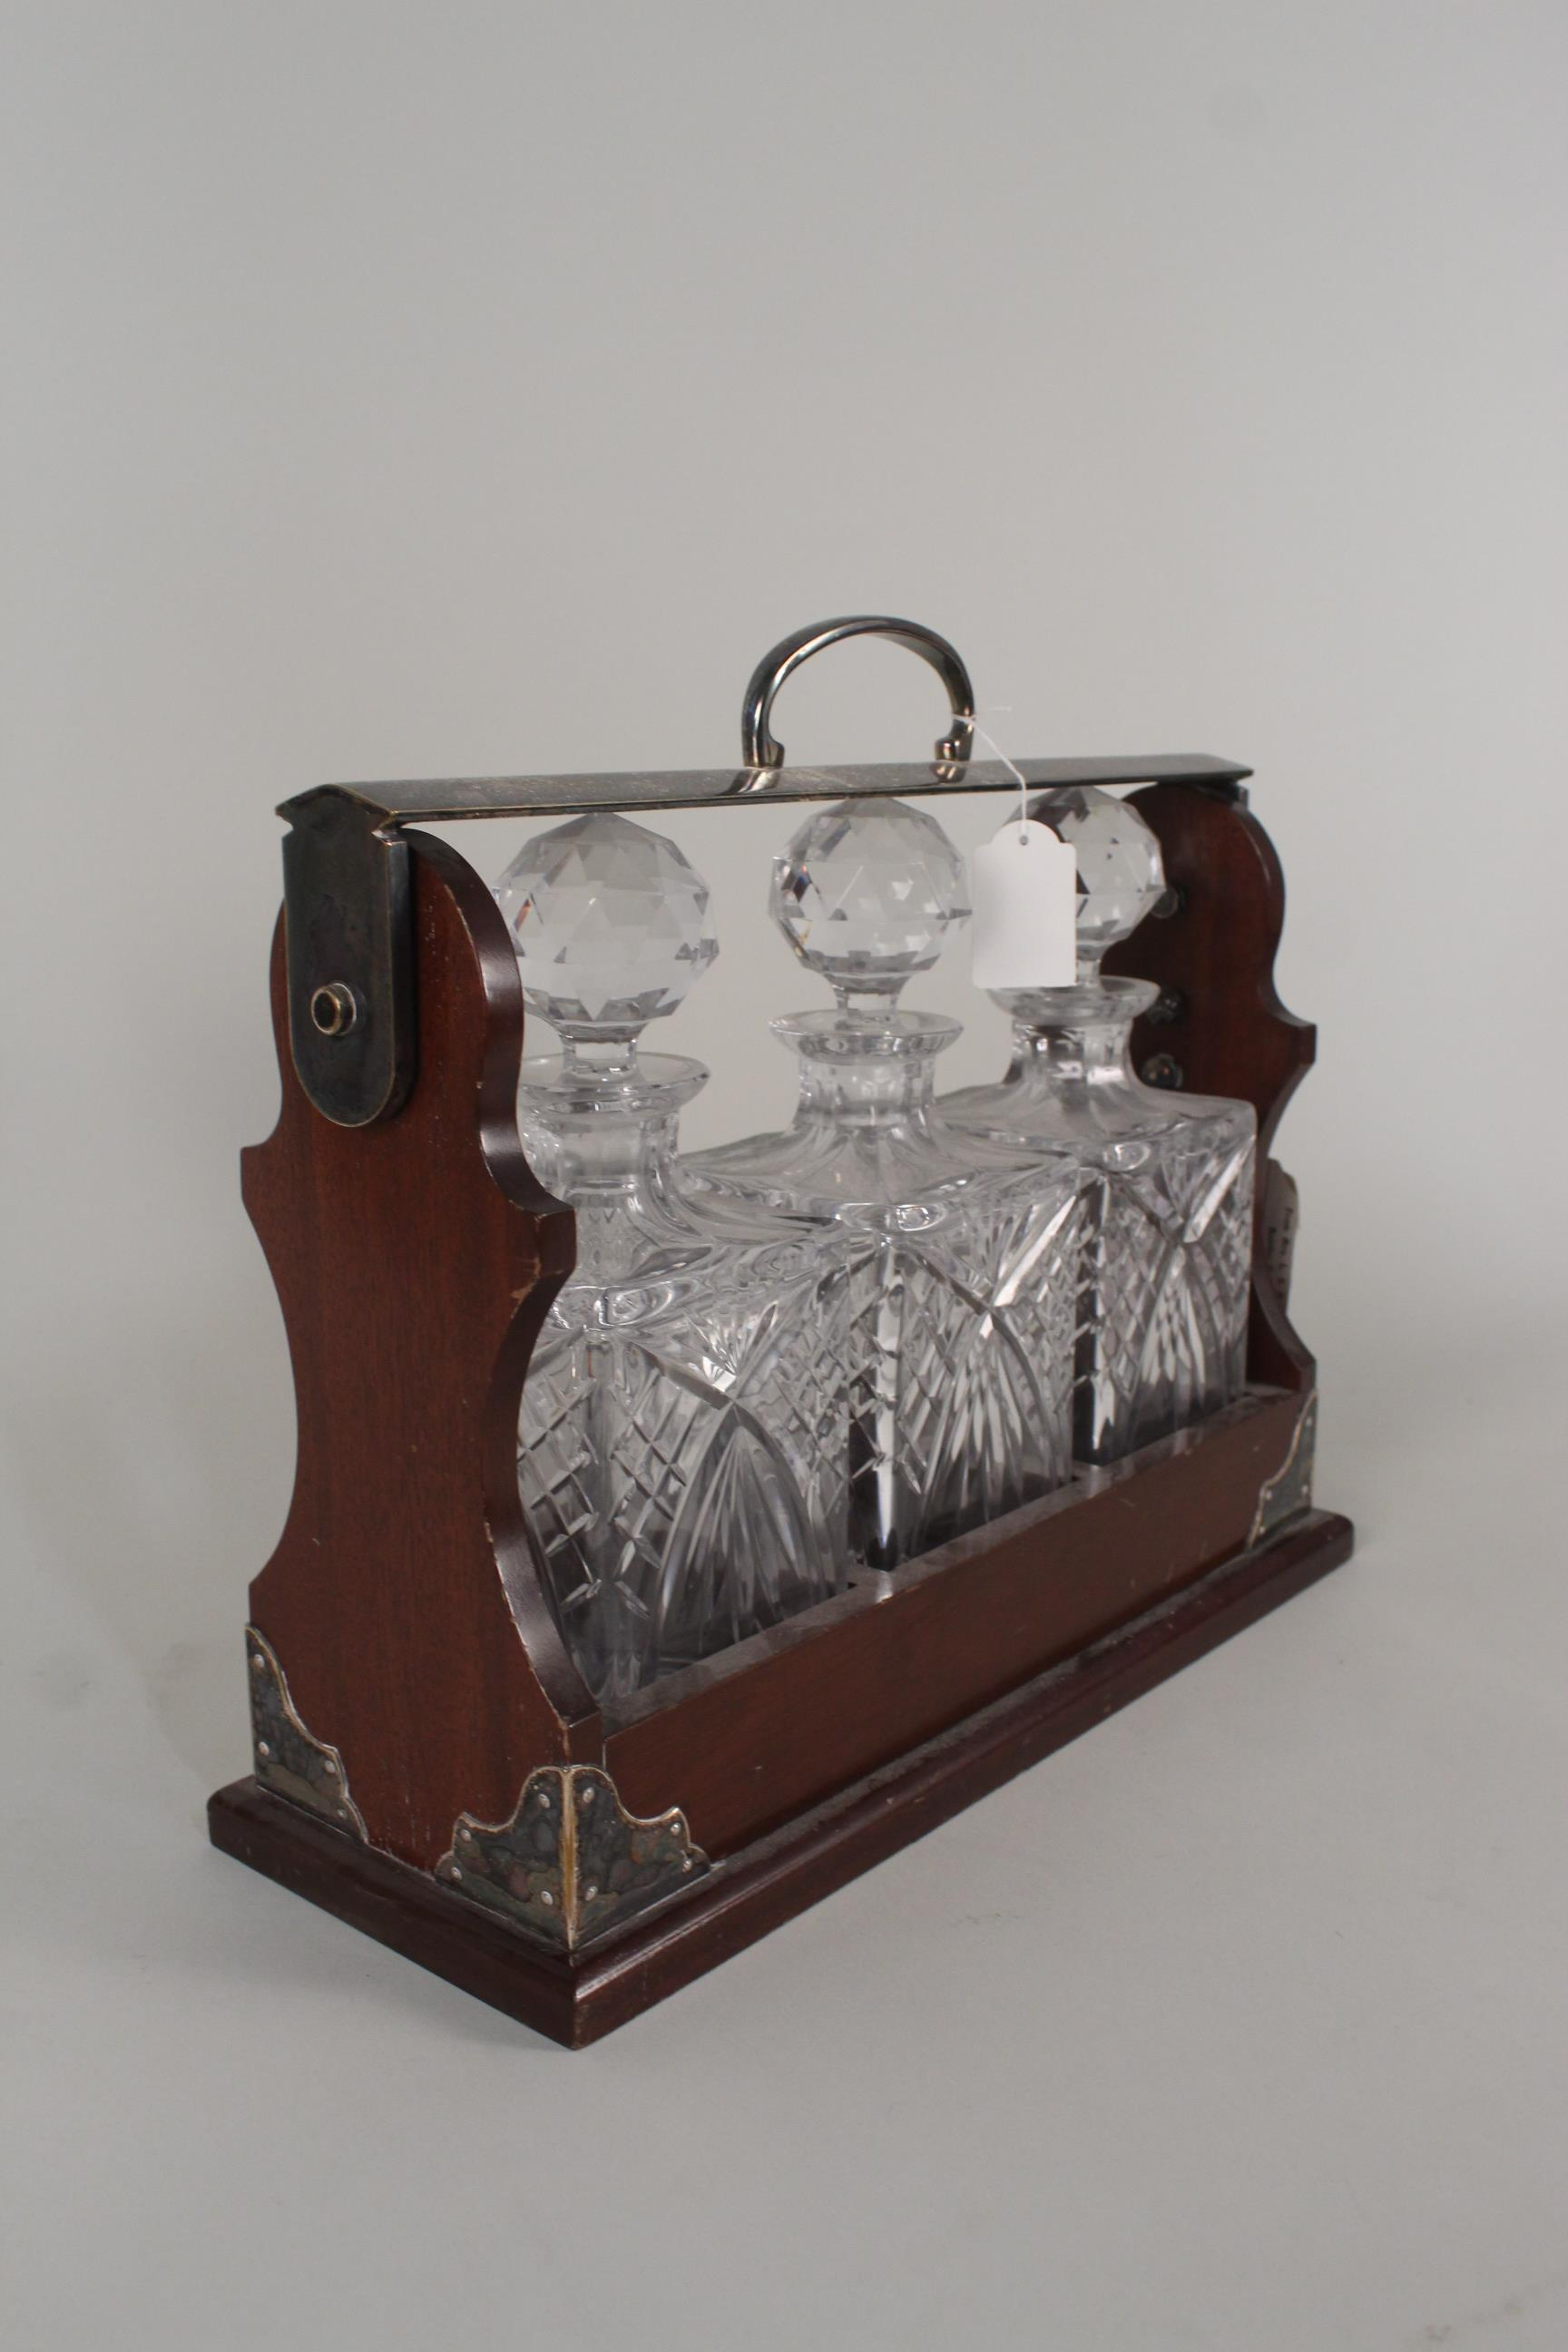 Lot 706 - An oak and silver plated three cut glass decanter tantalus, marked PB&S with key,